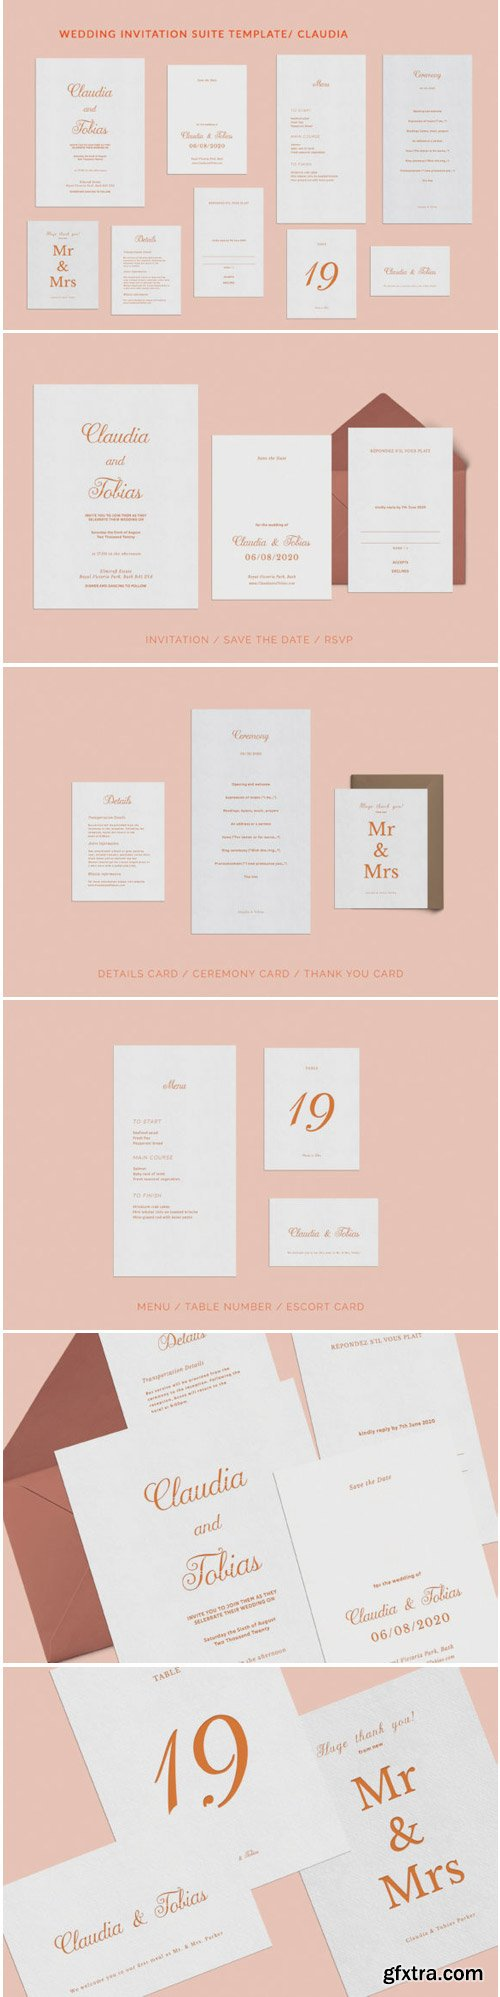 Wedding Invitation Suite Claudia 1771812